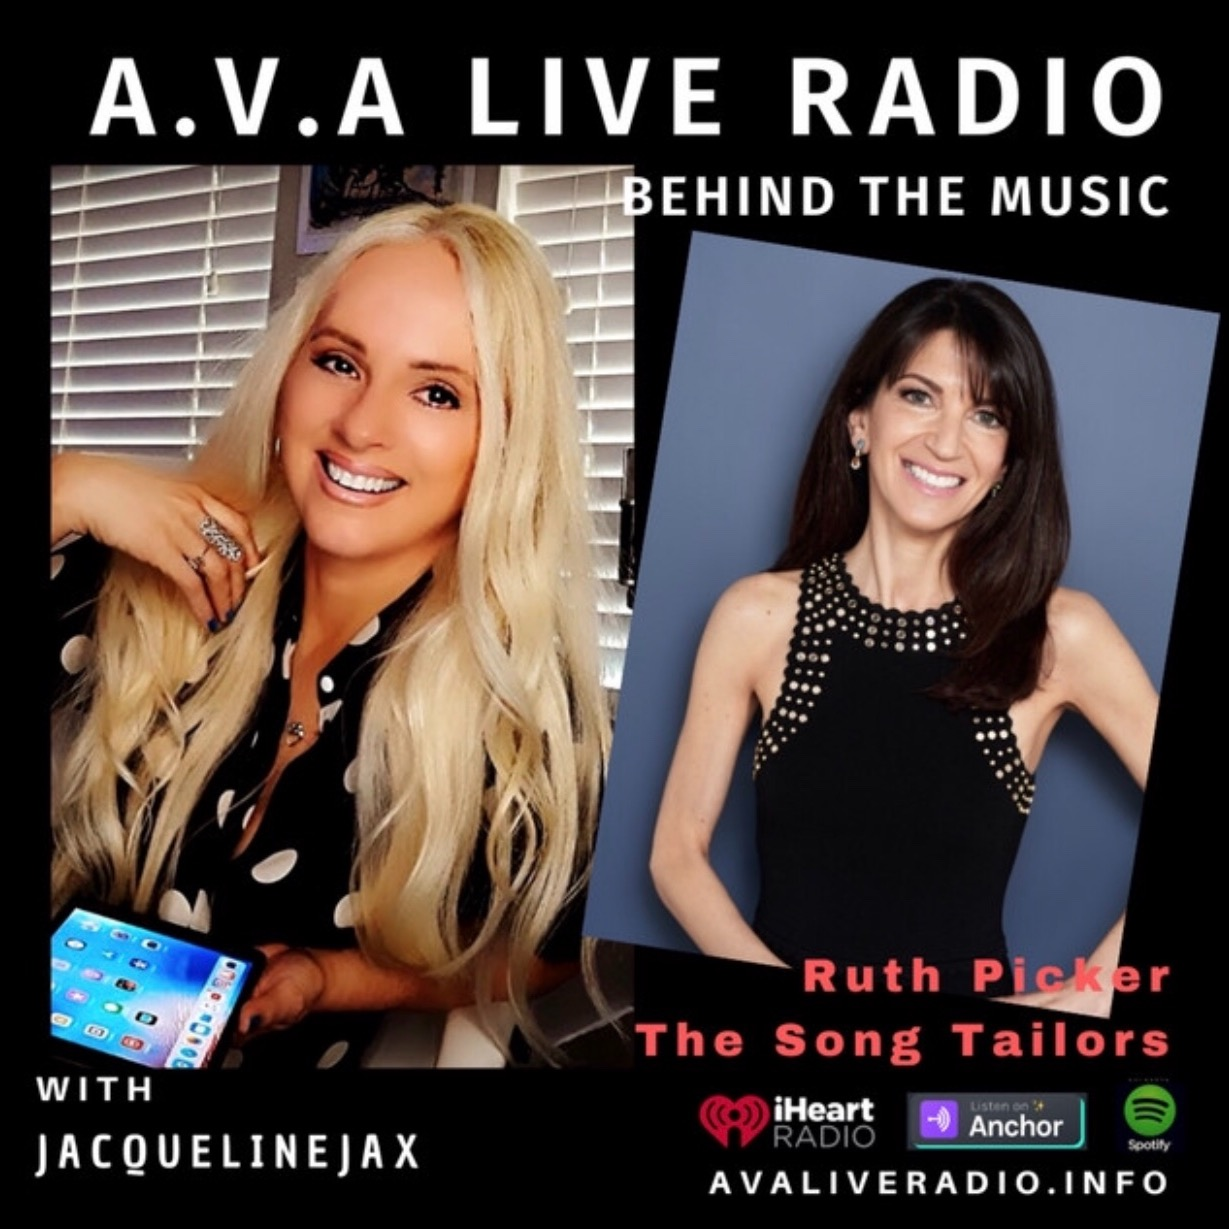 @thesongtailors AVA Live Radio interview Link Thumbnail | Linktree